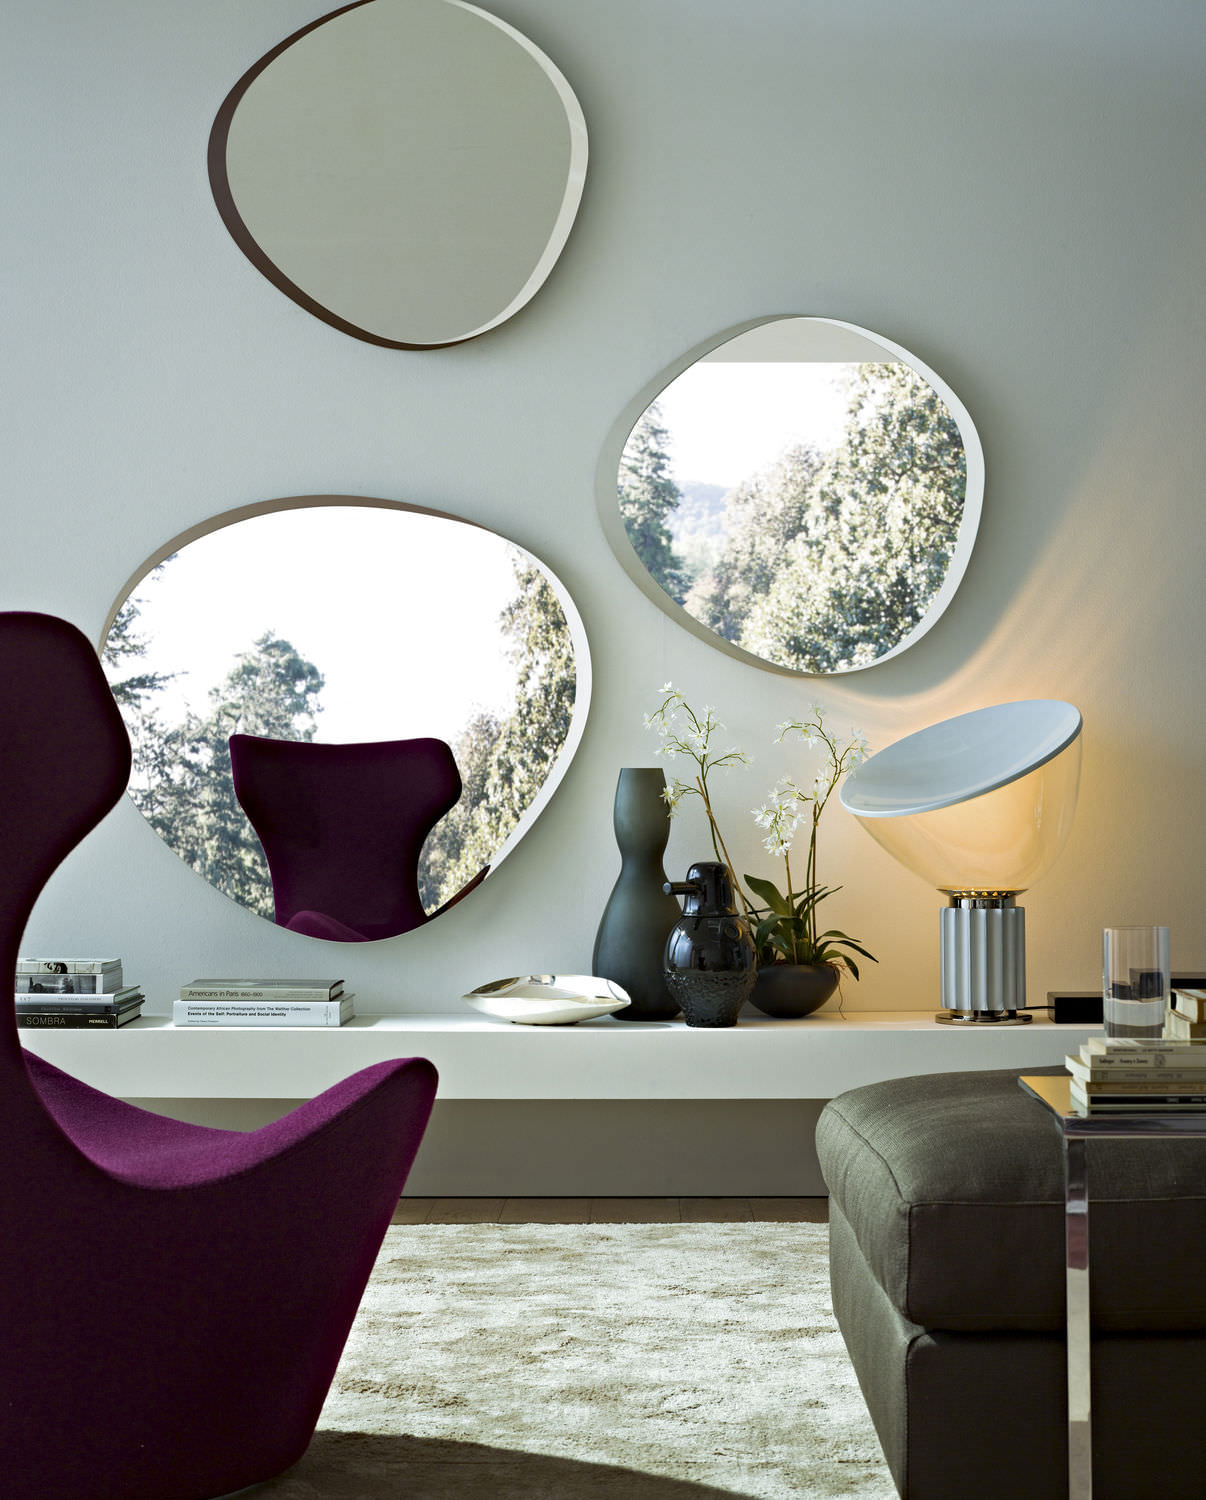 Miroir mural / contemporain / de salon / en bois - ZEISS ...